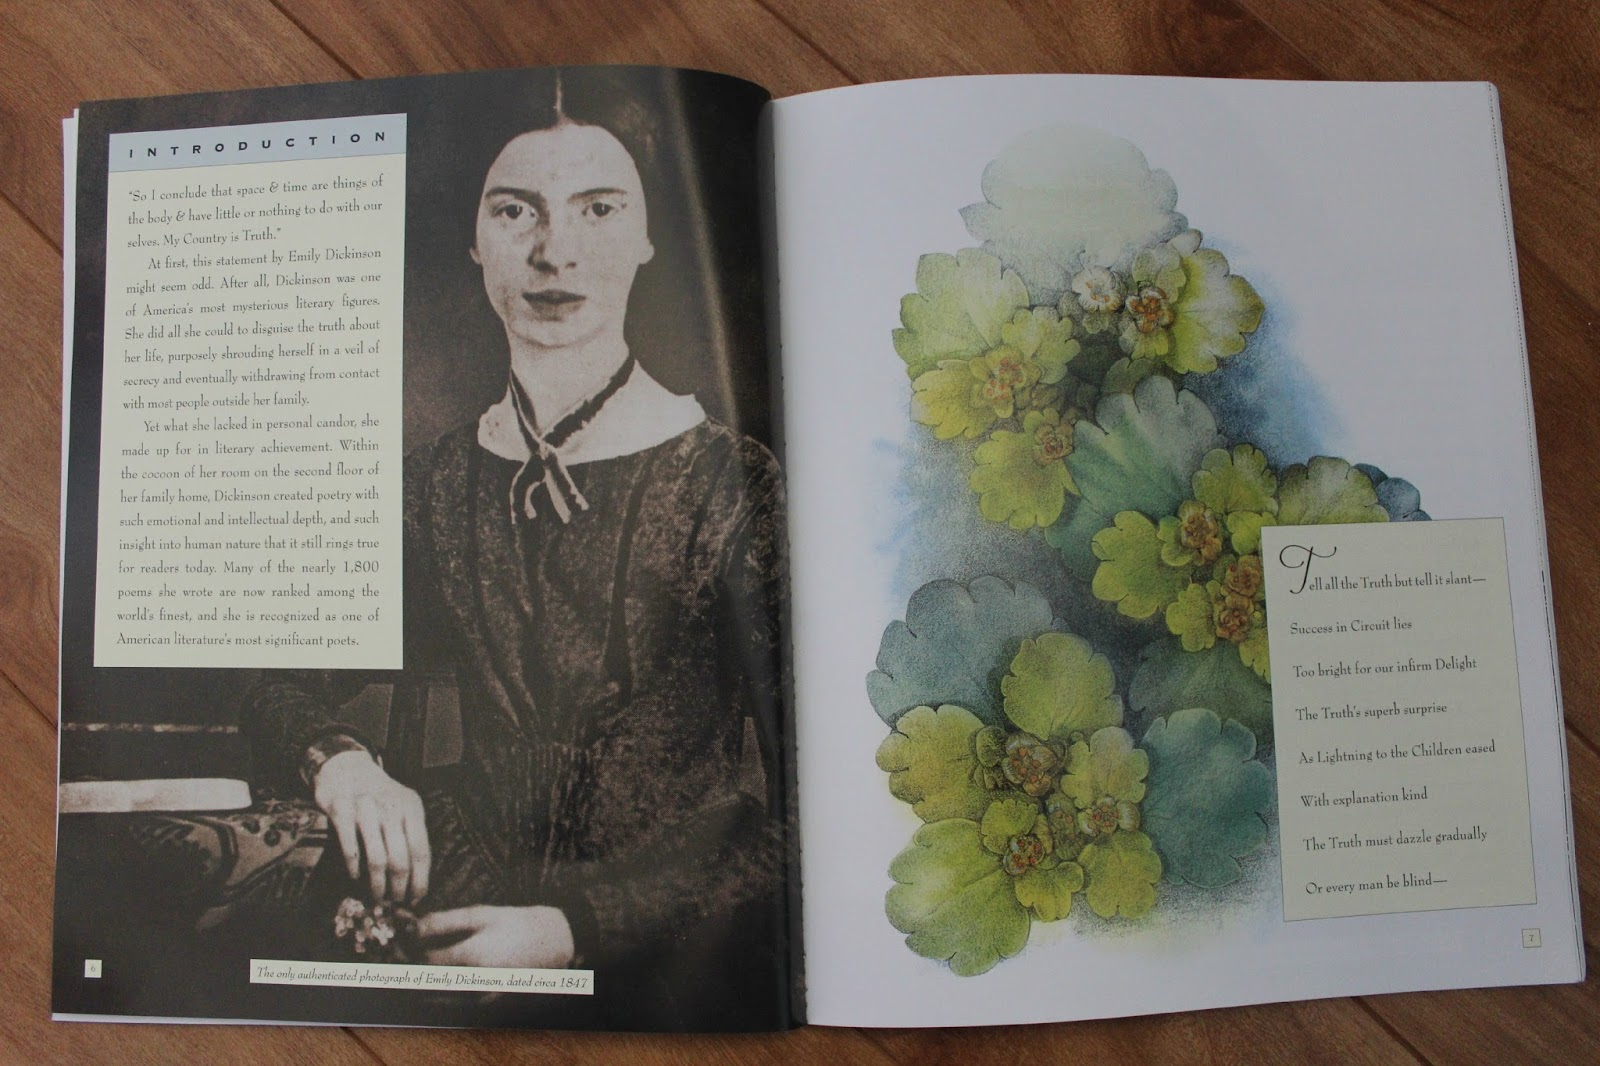 the life and work of emily dickinson an american poet The independence and immediacy of dickinson's work and her personal vision captured something uniquely american she was perhaps the most philosophical american poet.